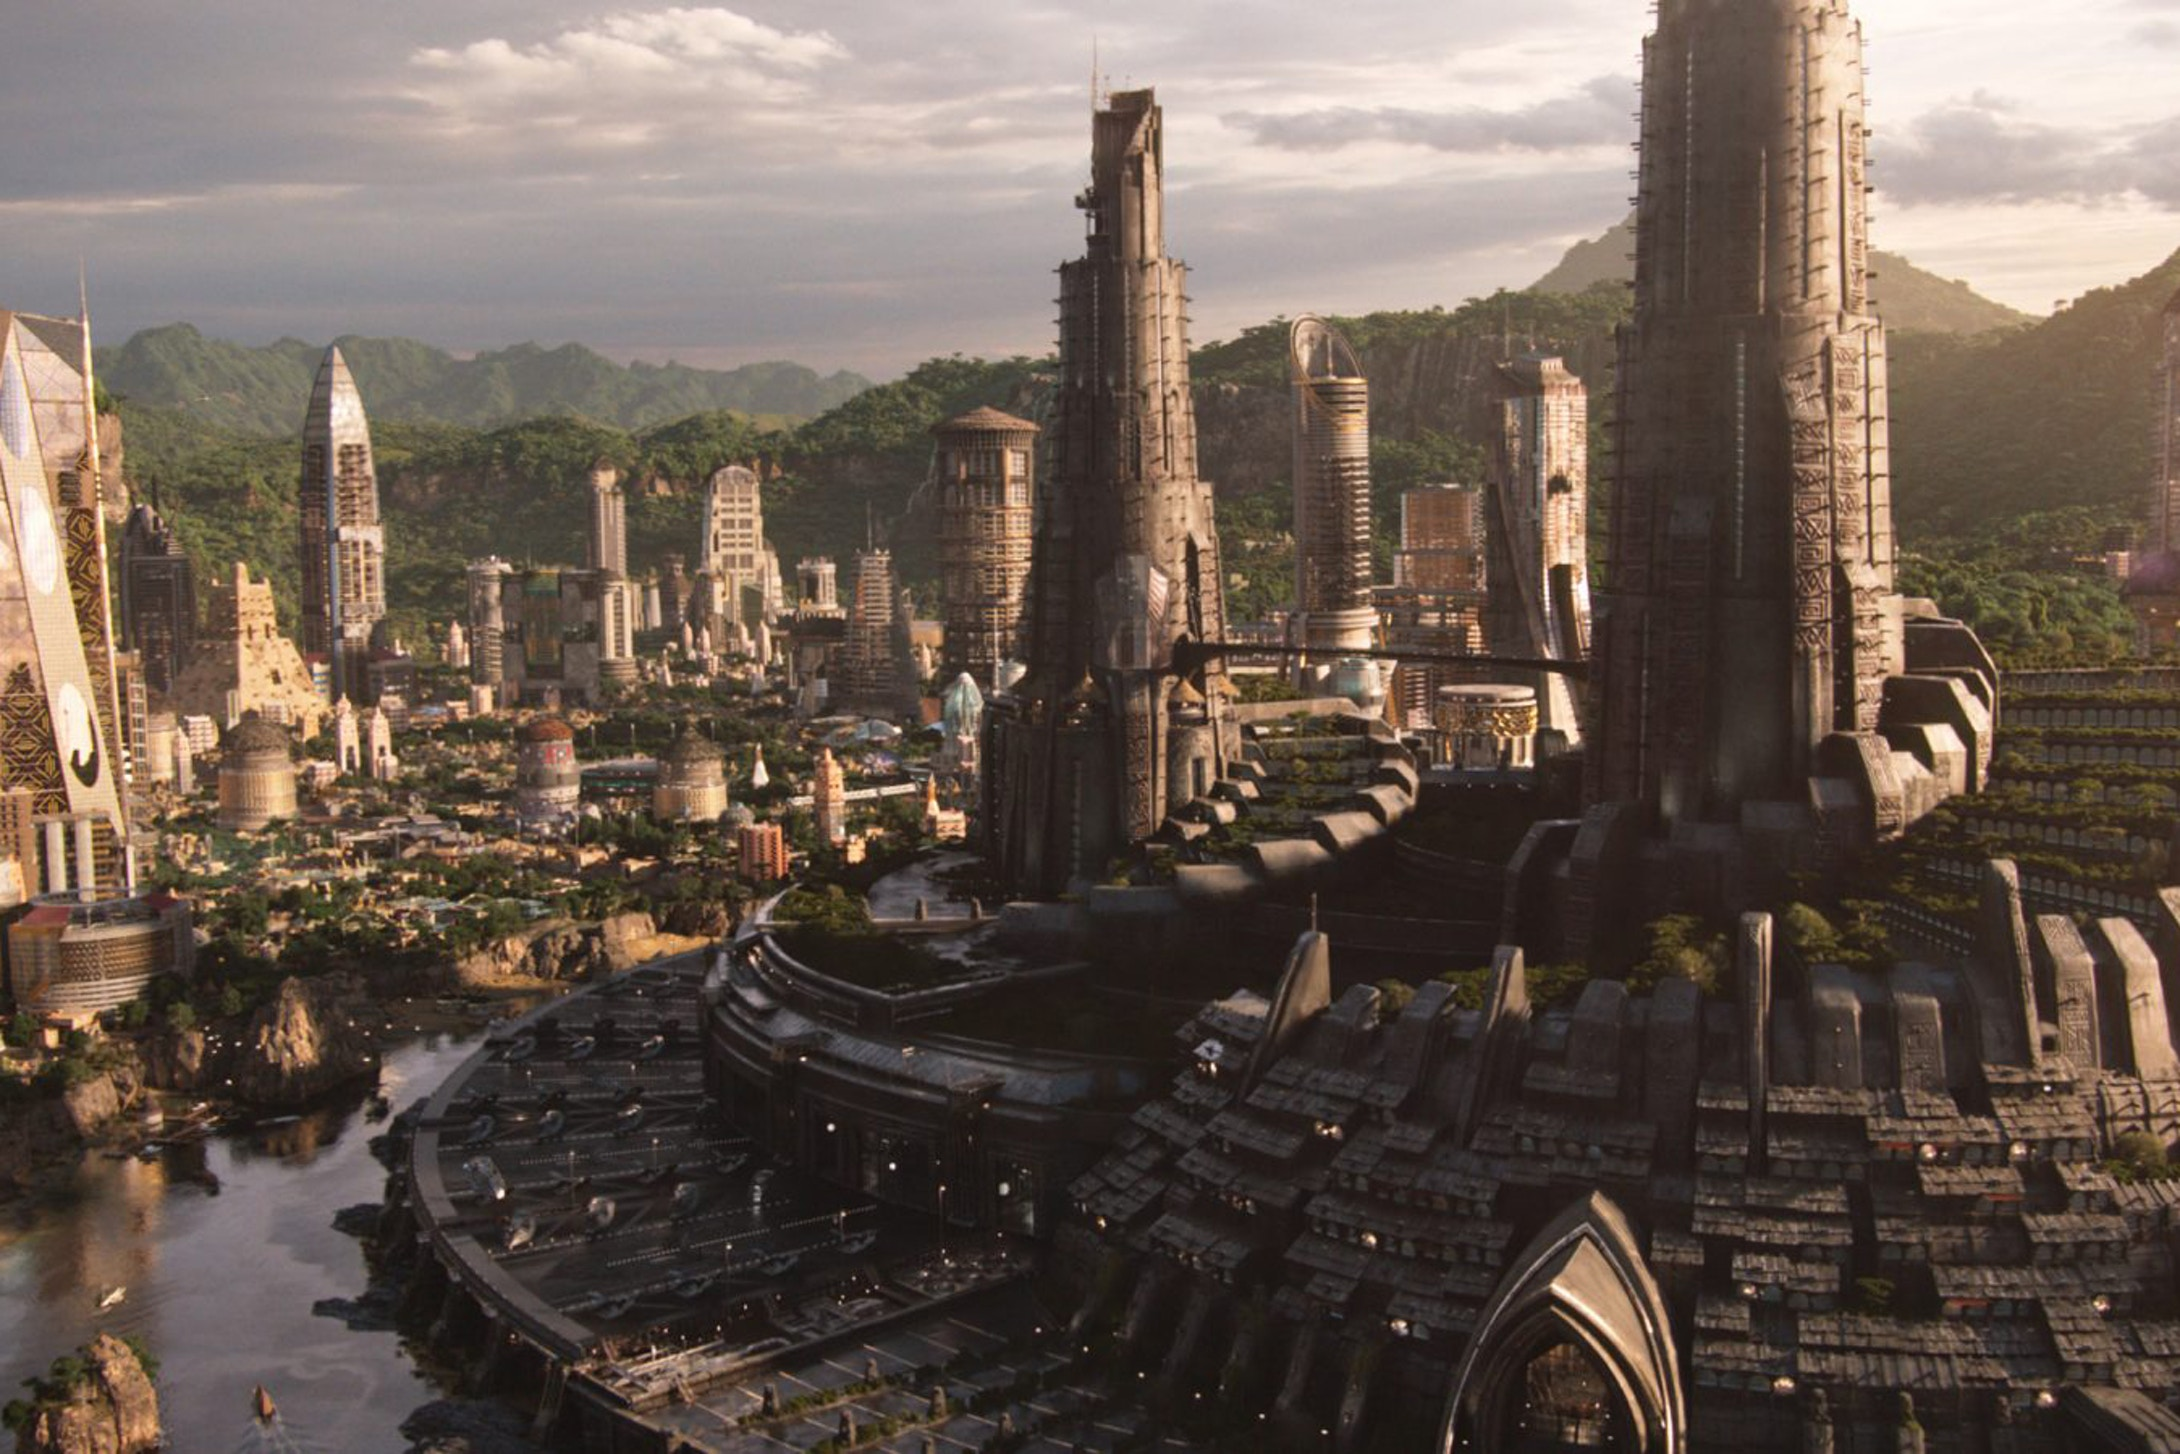 According to Black Panther's production designer Hannah Beachler, the architecture behind the city of Wakanda was inspired by the late Zaha Hadid.